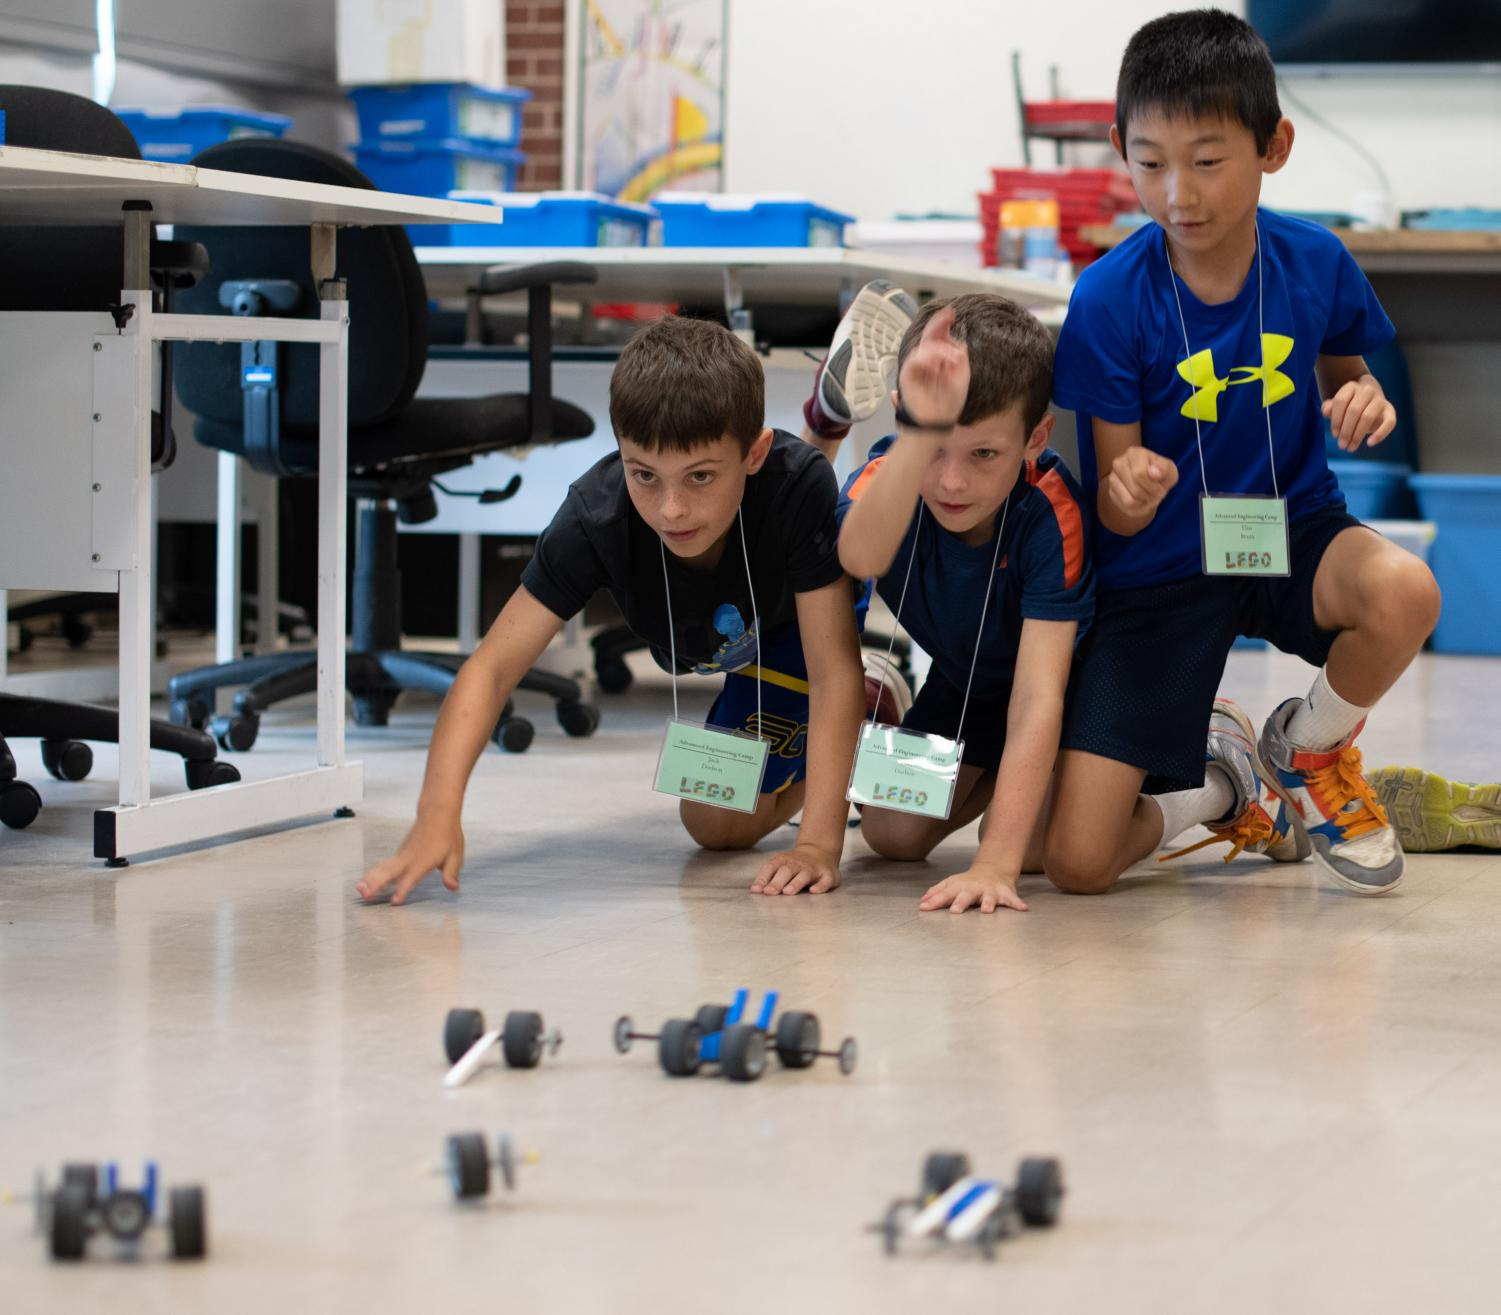 Children+race+their+cars+during+the+Advanced+Engineering+LEGO+Camp+on+Tuesday%2C+July+9%2C+2019+inside+Quigley+Hall.+The+camp+is+for+children+entering+3rd%2C+4th+and+5th+grade.+During+the+five+day+camp+children+will+complete+projects+that+explore+energy+supply%2C+transfer%2C+accumulation%2C+conversation+and+consumption.+Instructor+Nicholas+Lach+has+been+working+at+the+lego+camps+for+almost+a+decade.+He+enjoyed+instructing+the+camps+so+much+he+changed+his+career+to+teaching.